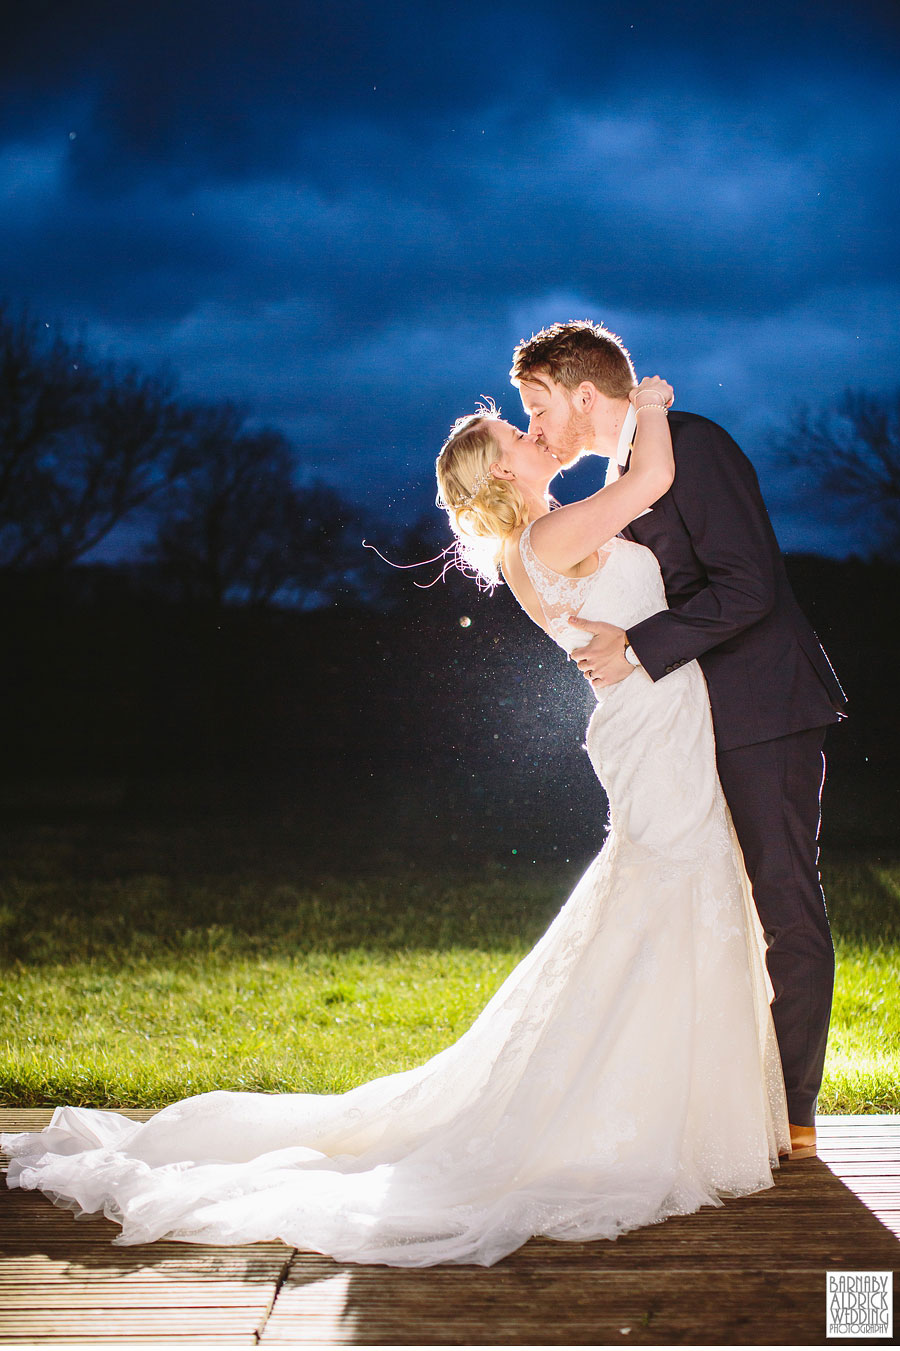 Priory Cottages Wetherby Wedding Photography 059